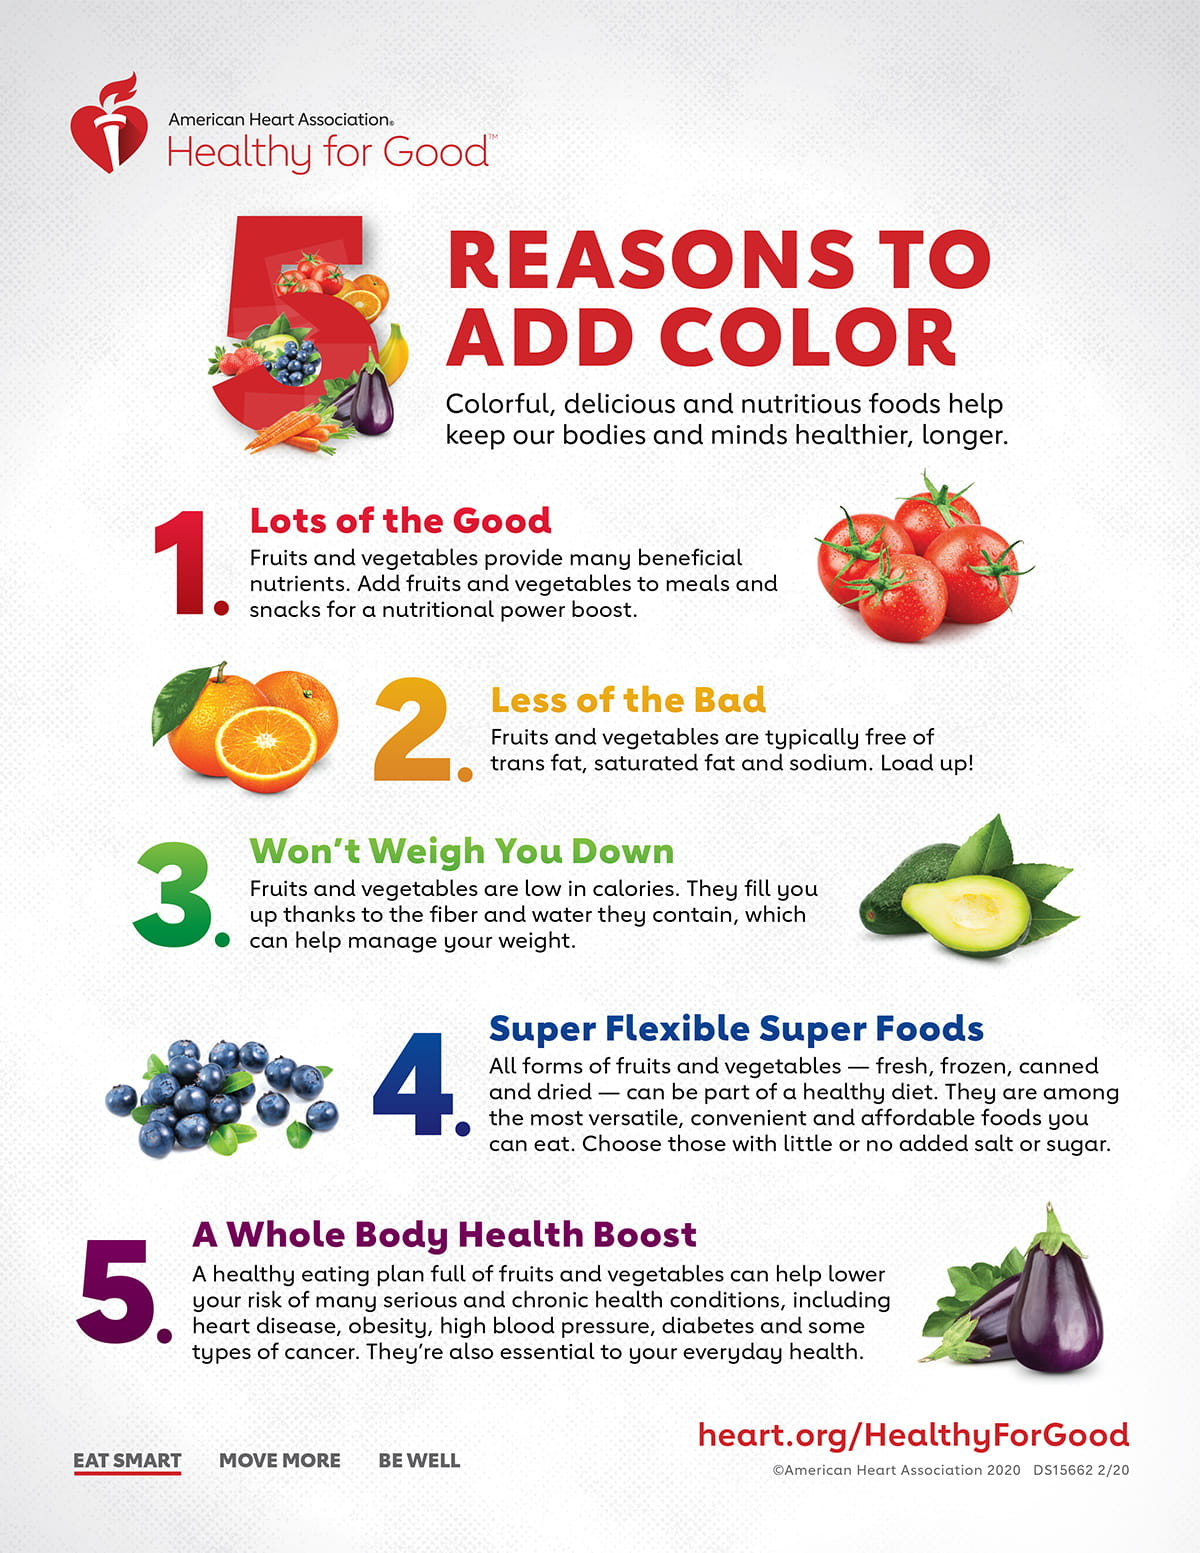 5 Reasons to Add Color infographic